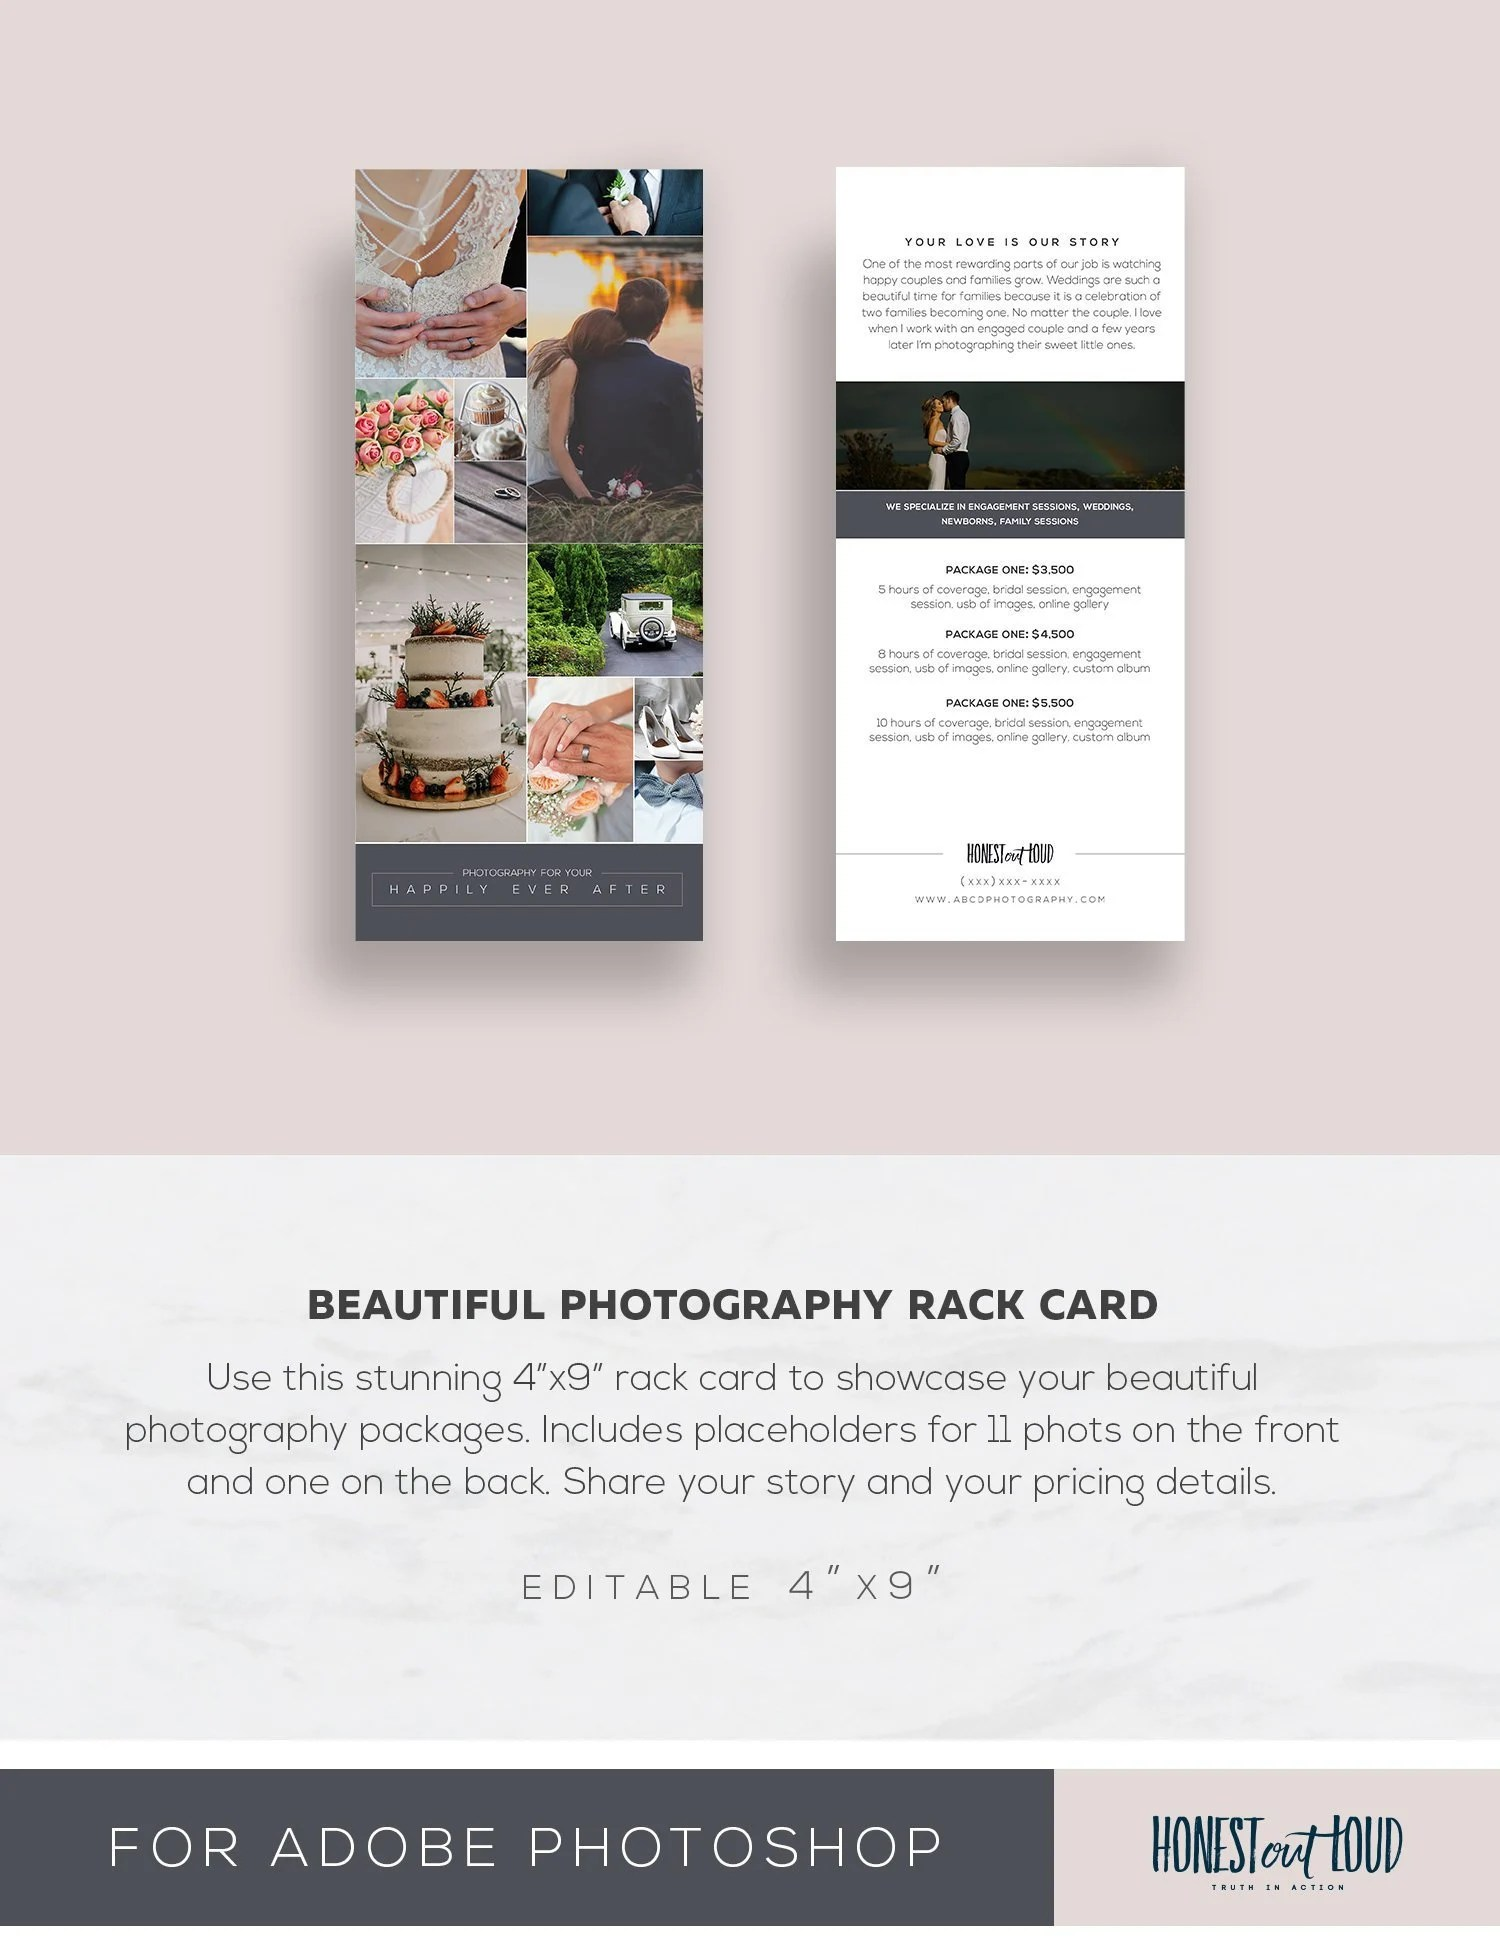 Wedding Photography Rack Card Template 4x9 Photoshop Instant Download Printable Editable Psd Promo Card Professional Photographer